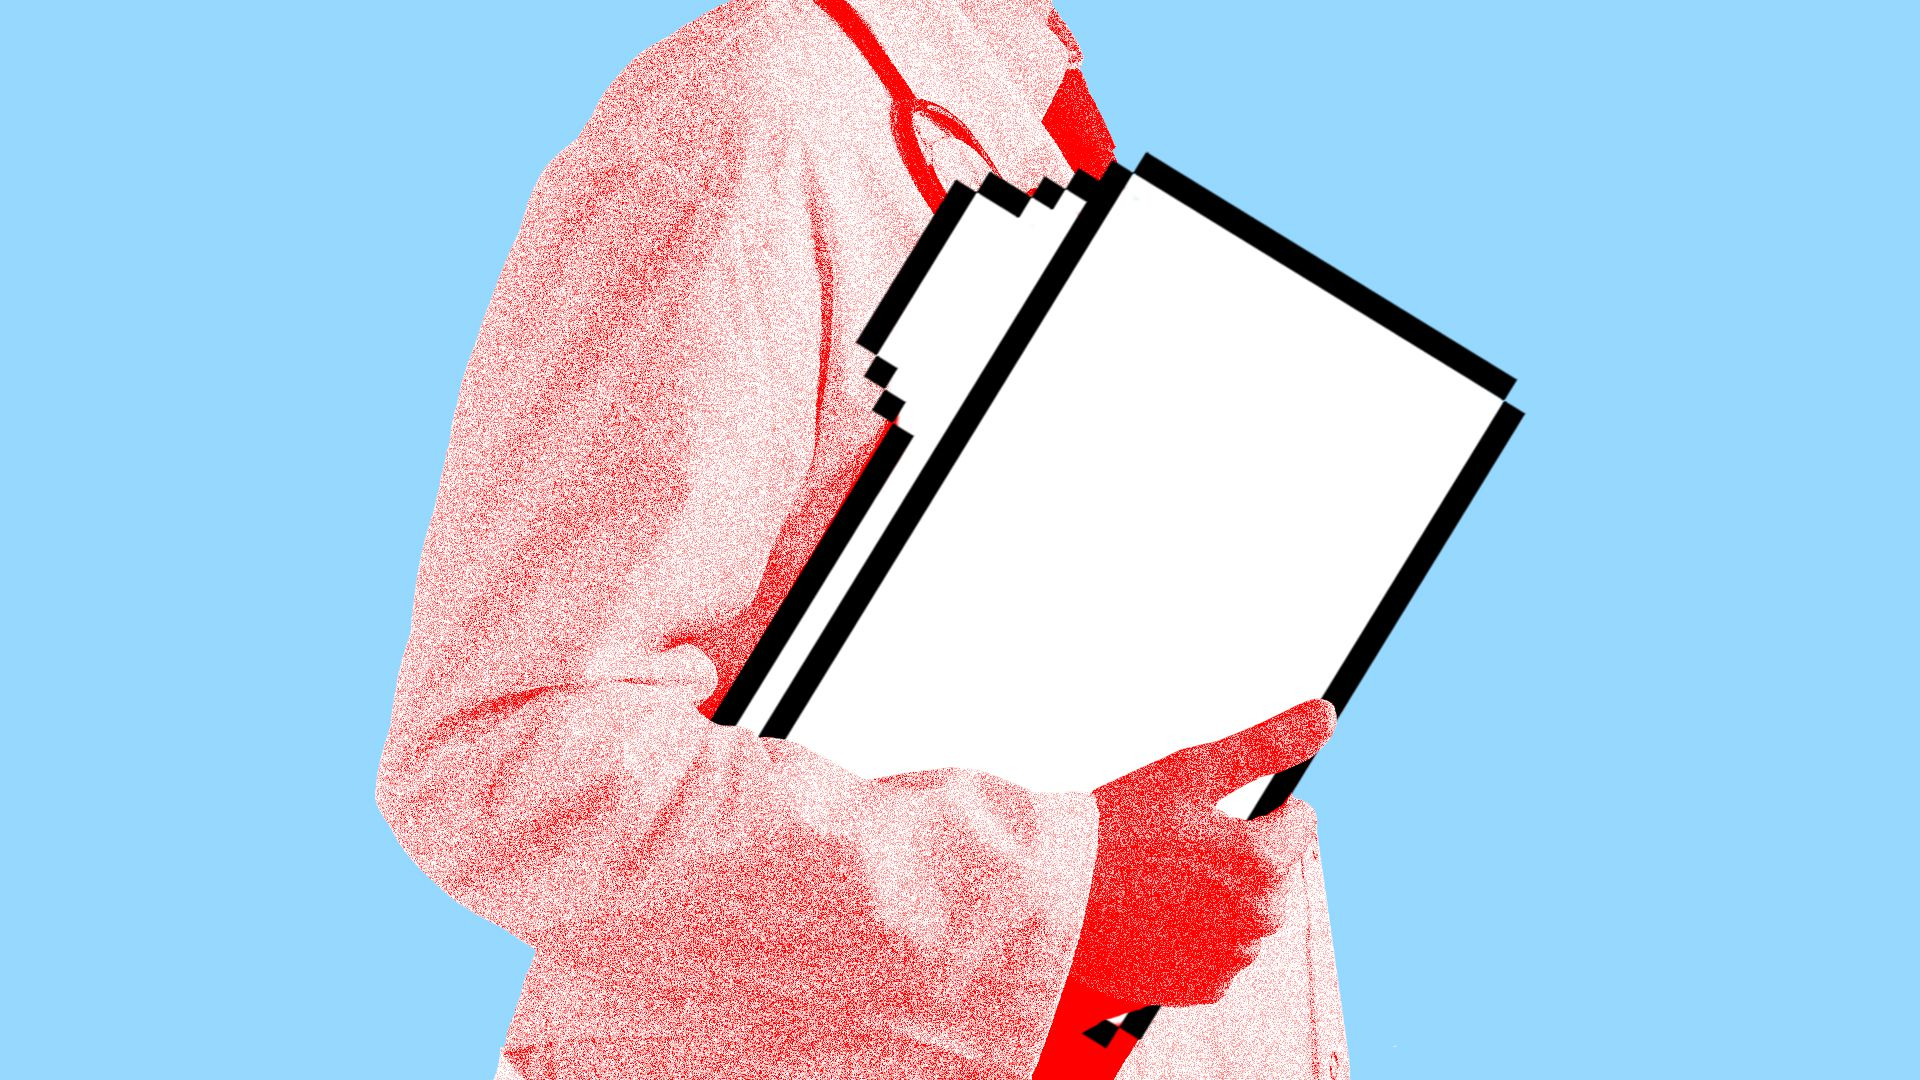 Illustration of a doctor carrying a computer as a file